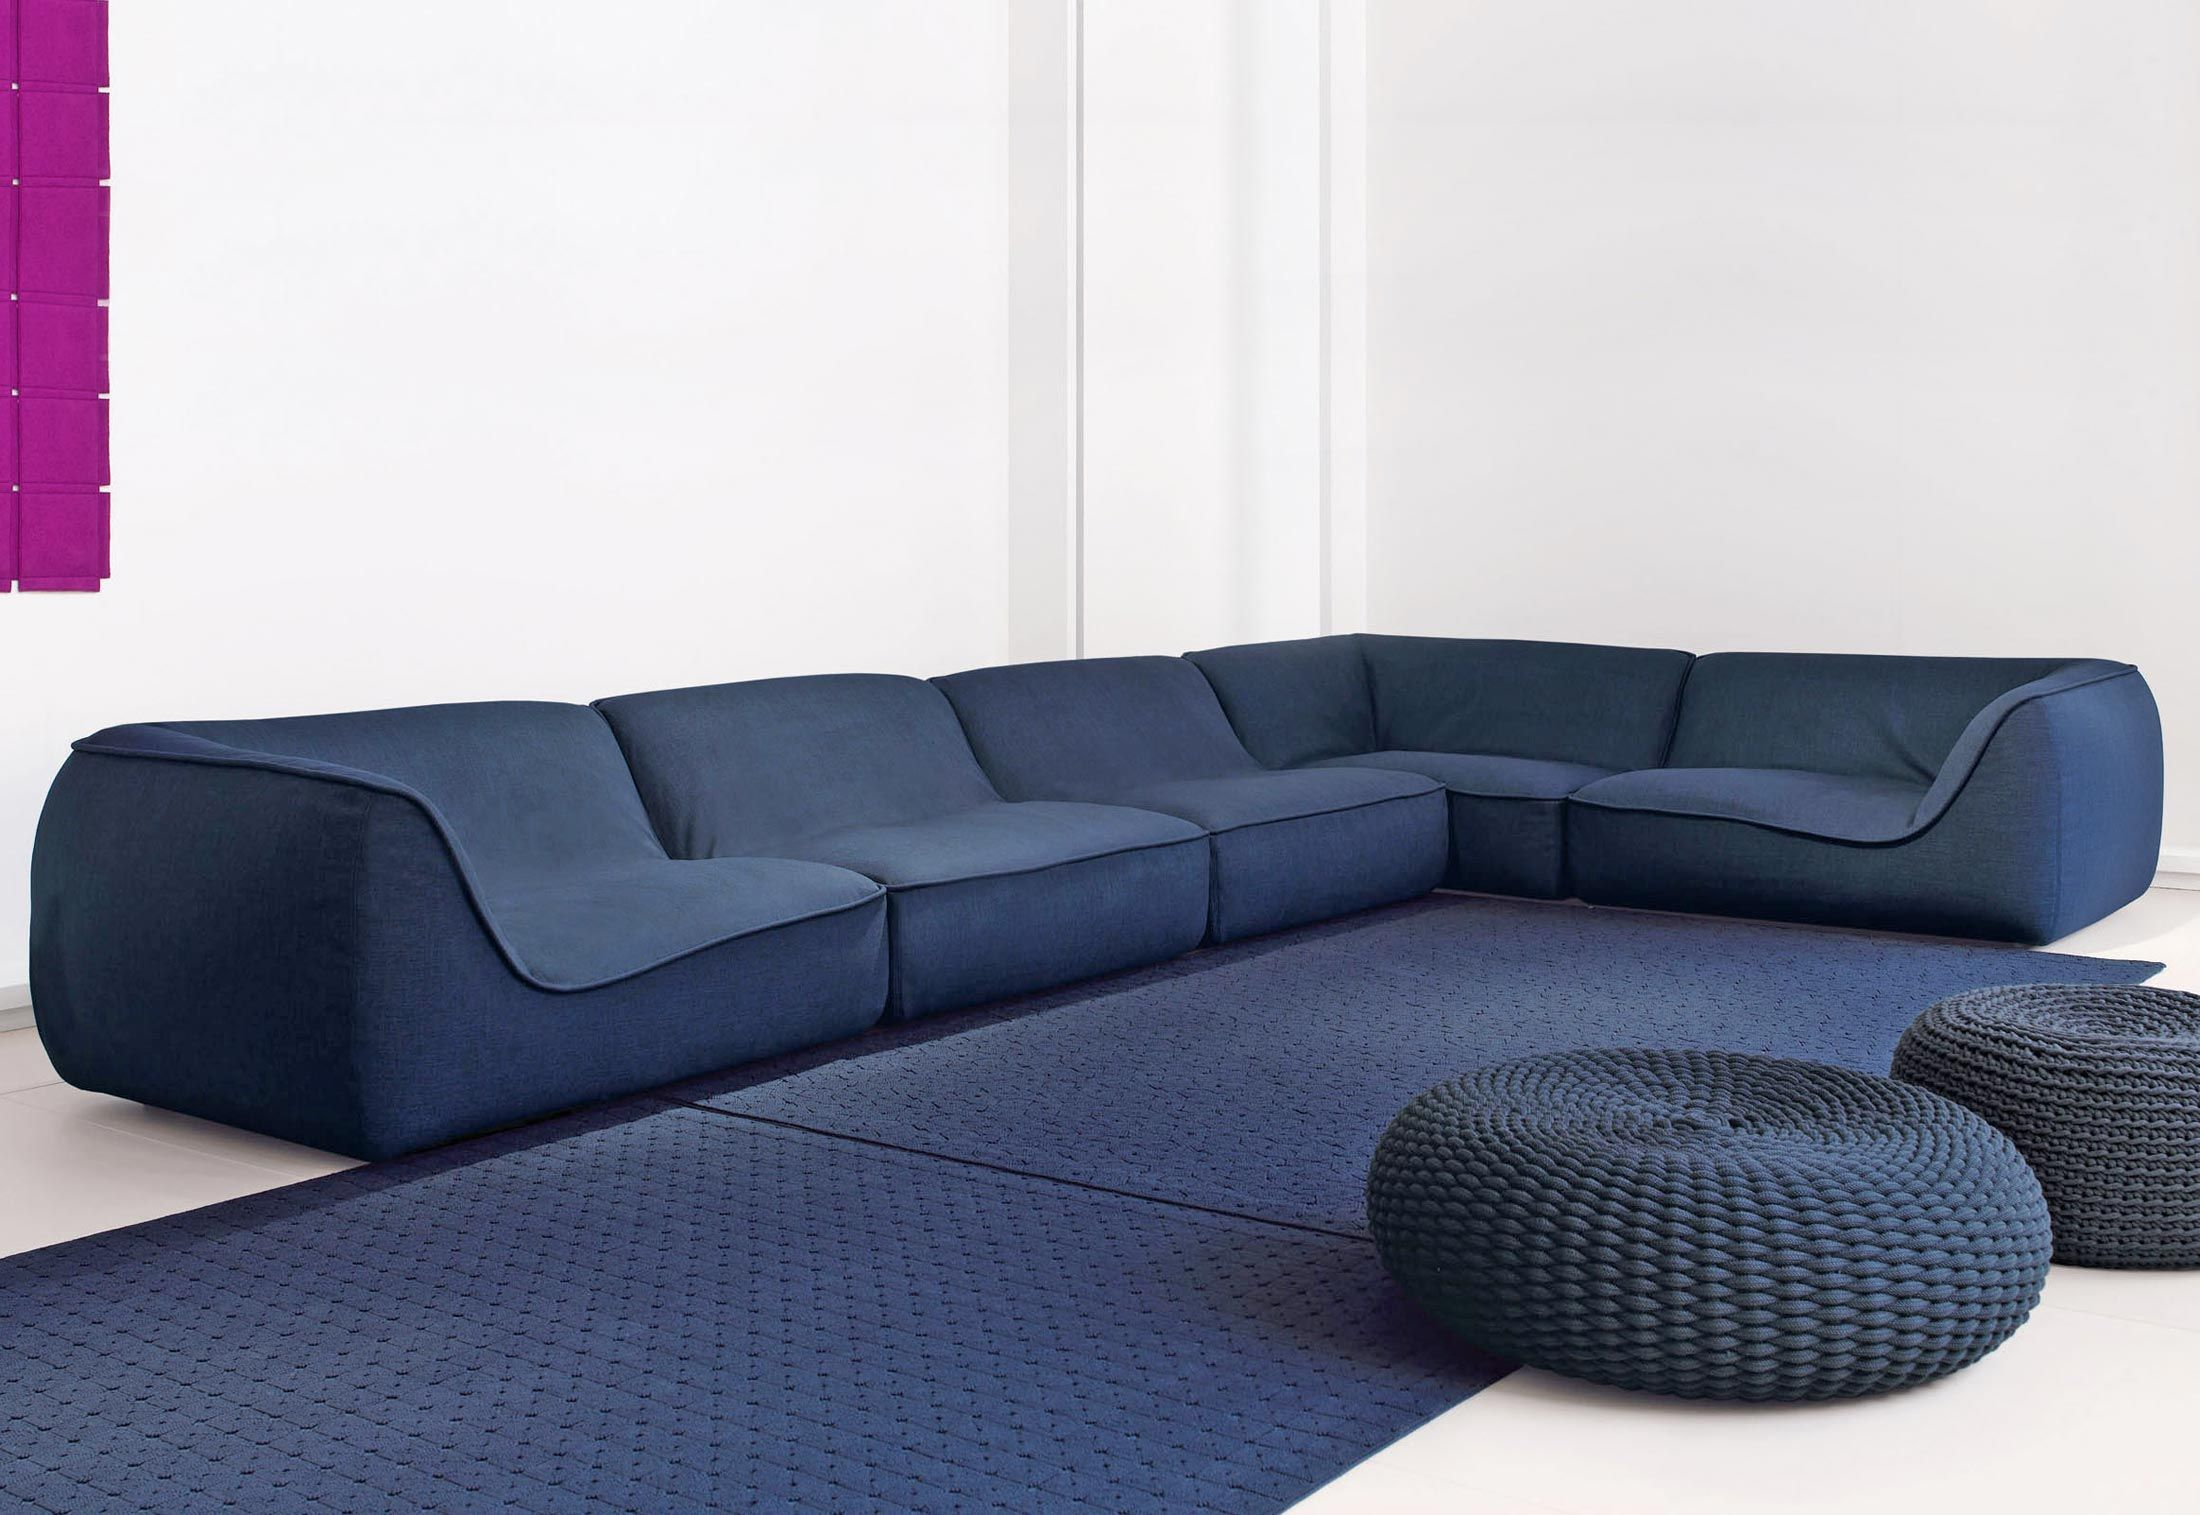 So   Designer Sofas By Paola Lenti ✓ Comprehensive Product U0026 Design  Information ✓ Catalogs ➜ Get Inspired Now